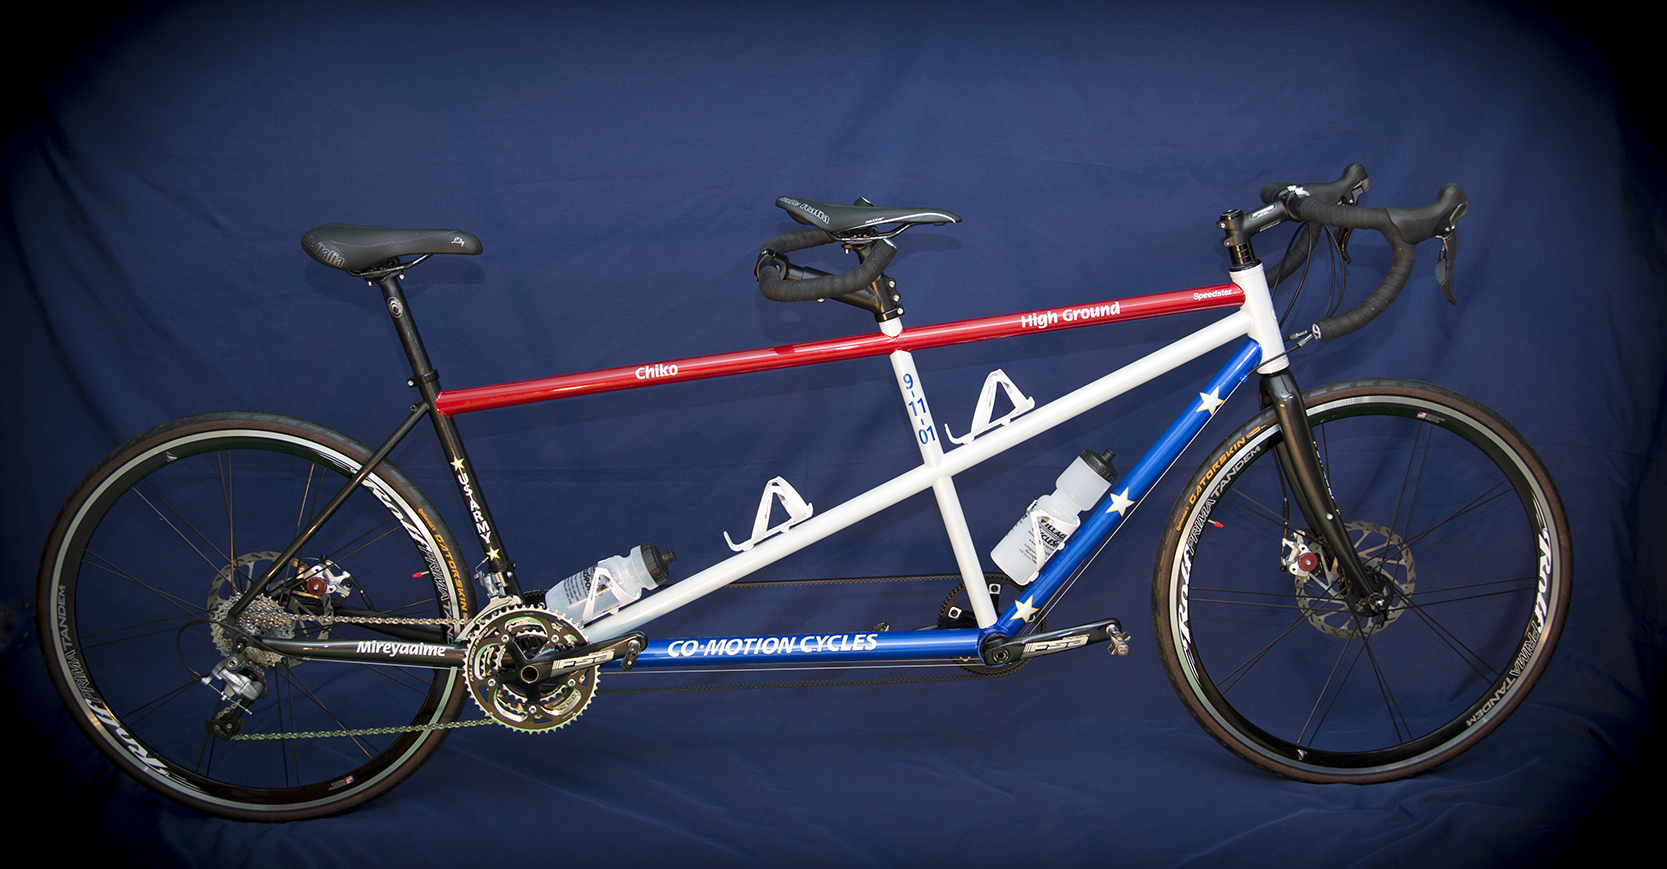 The tandem which Steve rides